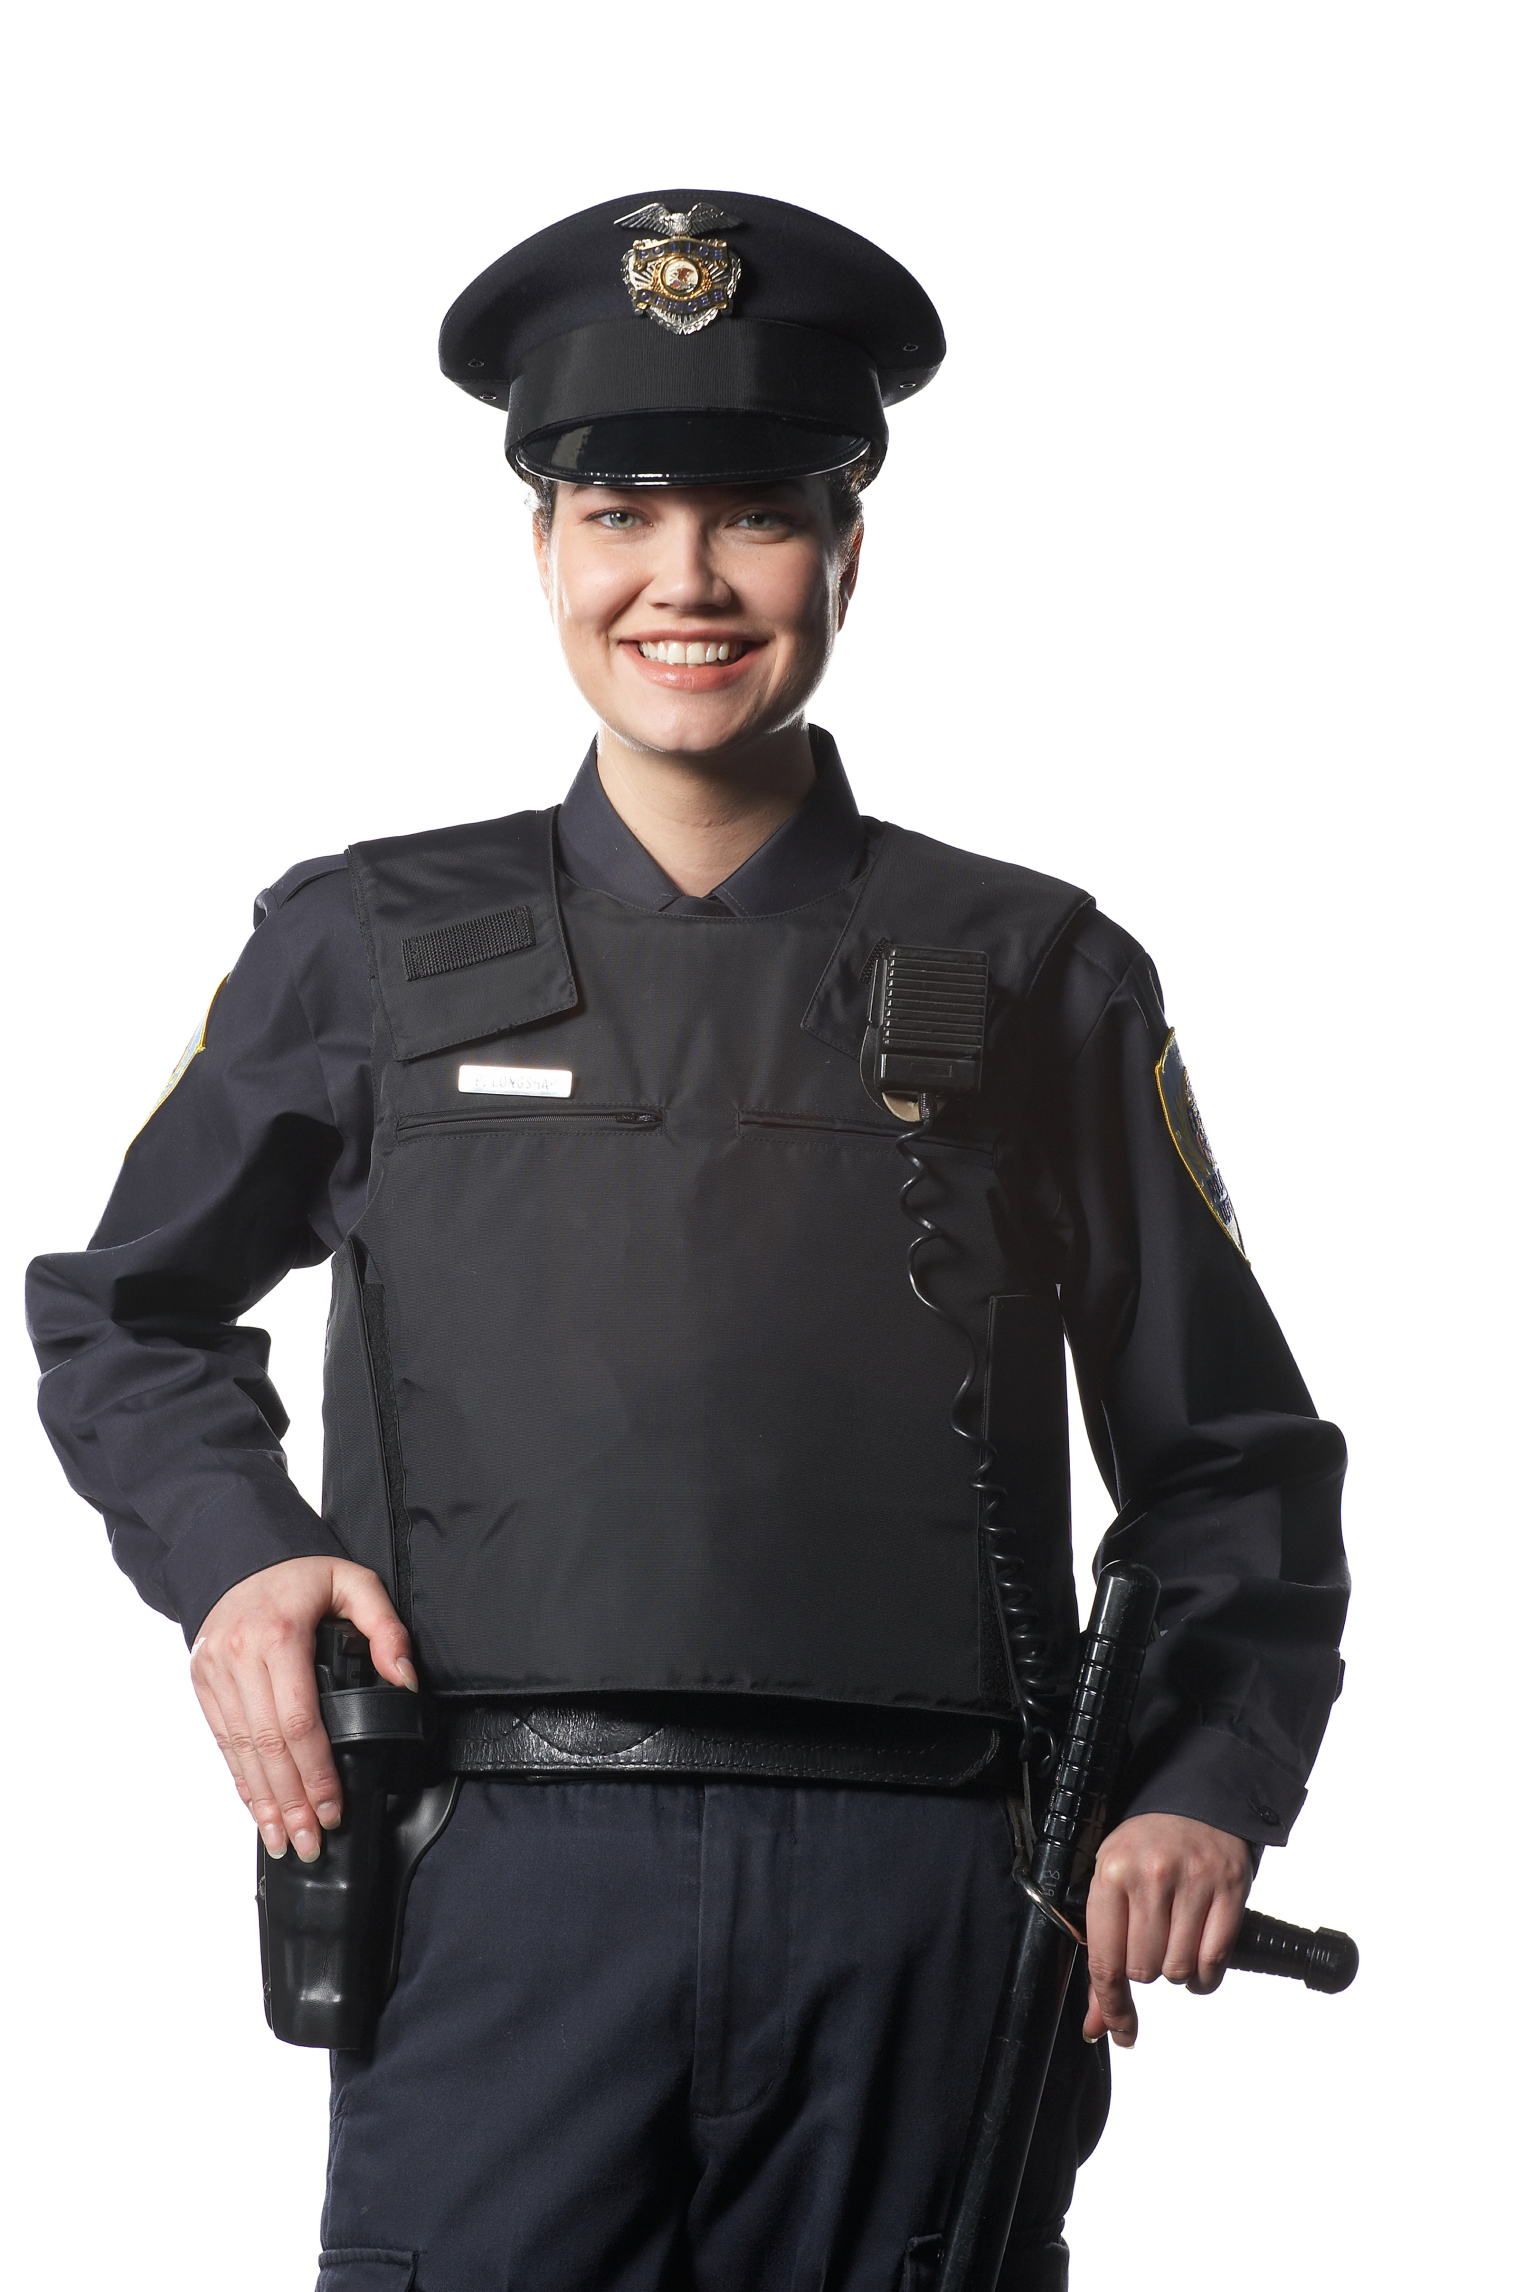 How Much Does an LAPD Officer Make? | Bizfluent